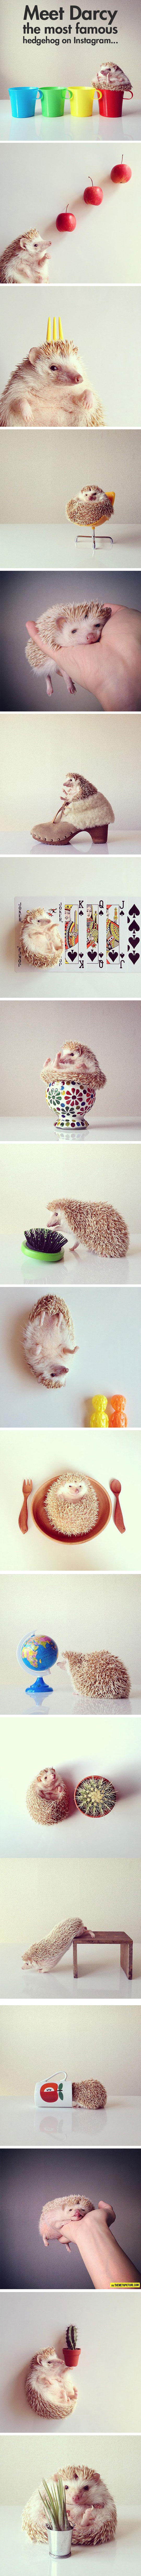 Darcy, The Most Fabulous Hedgehog On The Internet